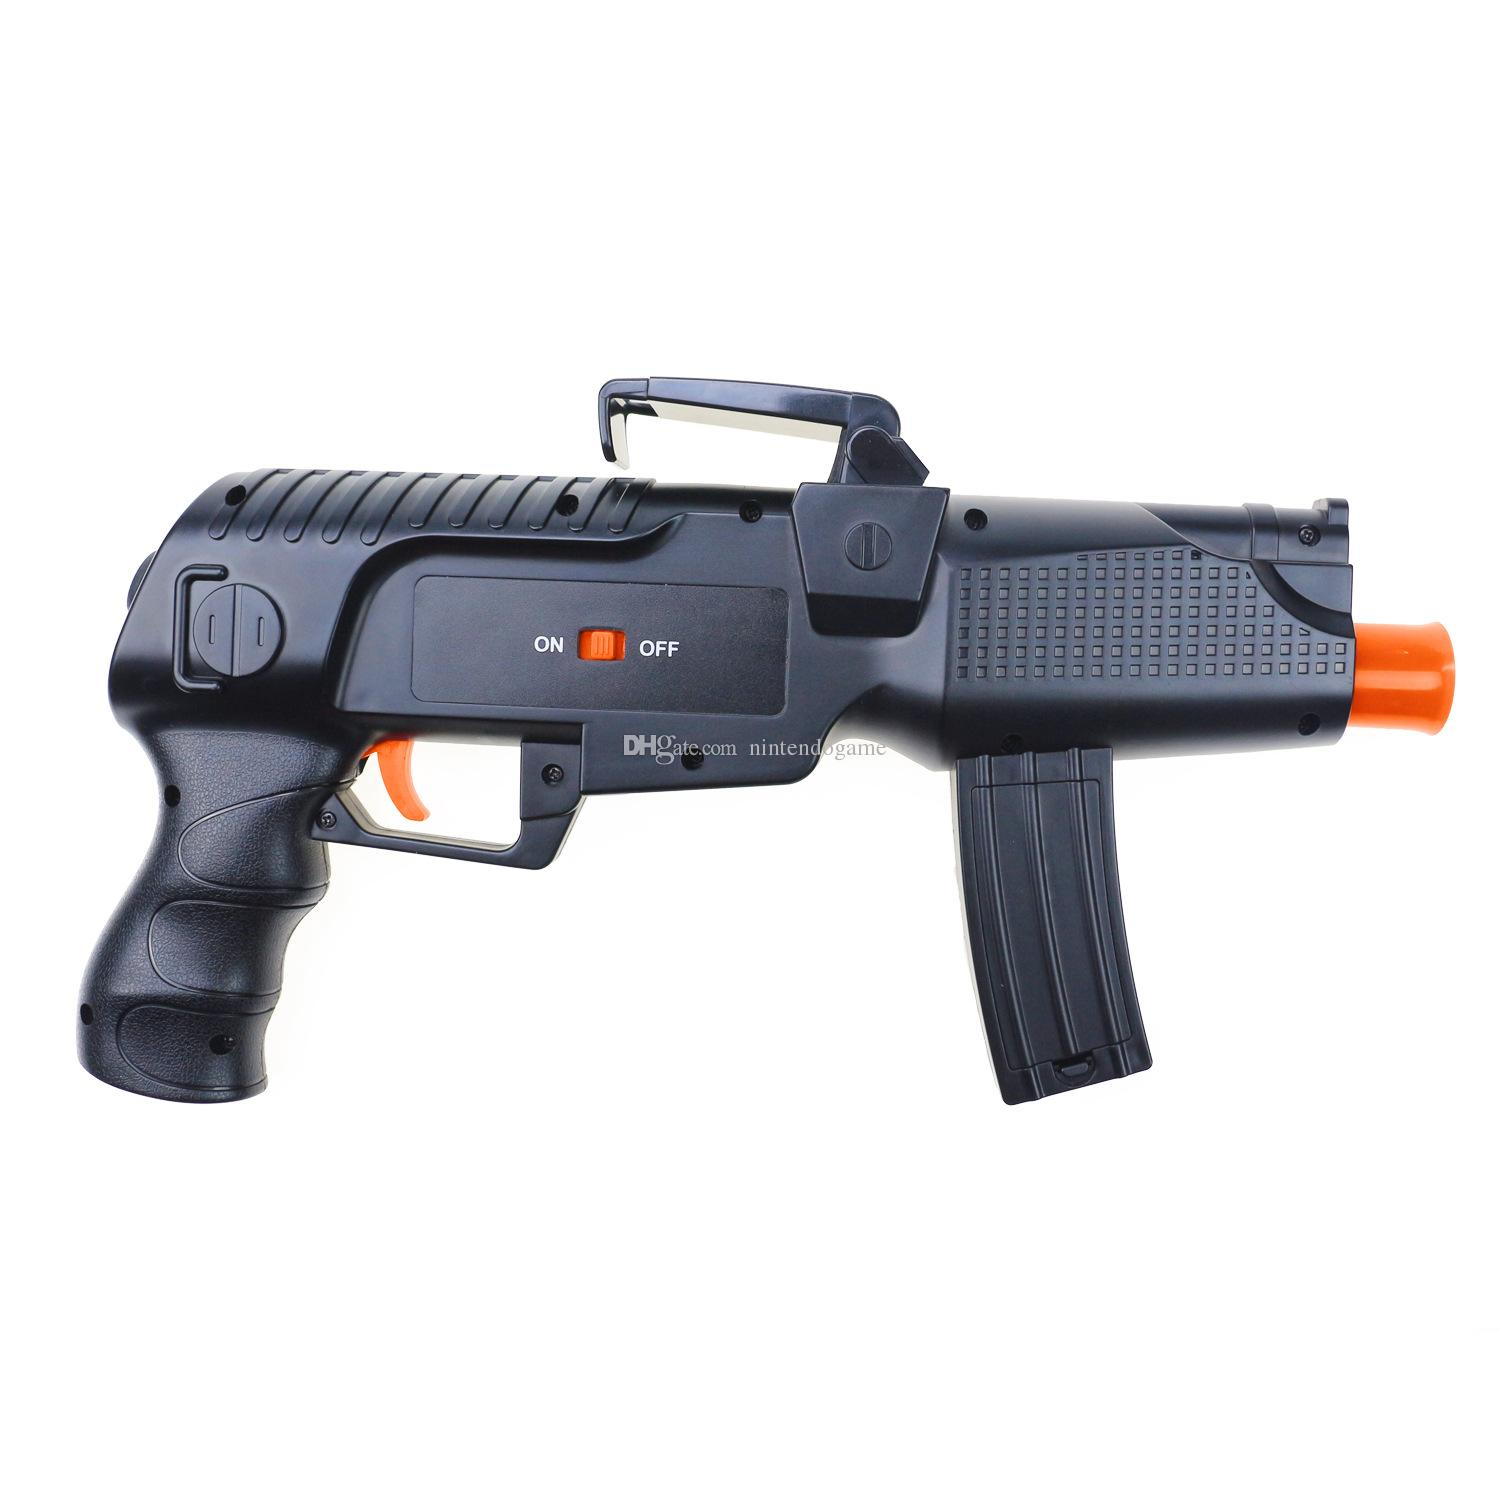 Hot AR Game GUN Gamepad Joystick Bluetooth Controller Remote Control Toys Gun Ar Blaster For iPhone Android Smart Phone Retail package